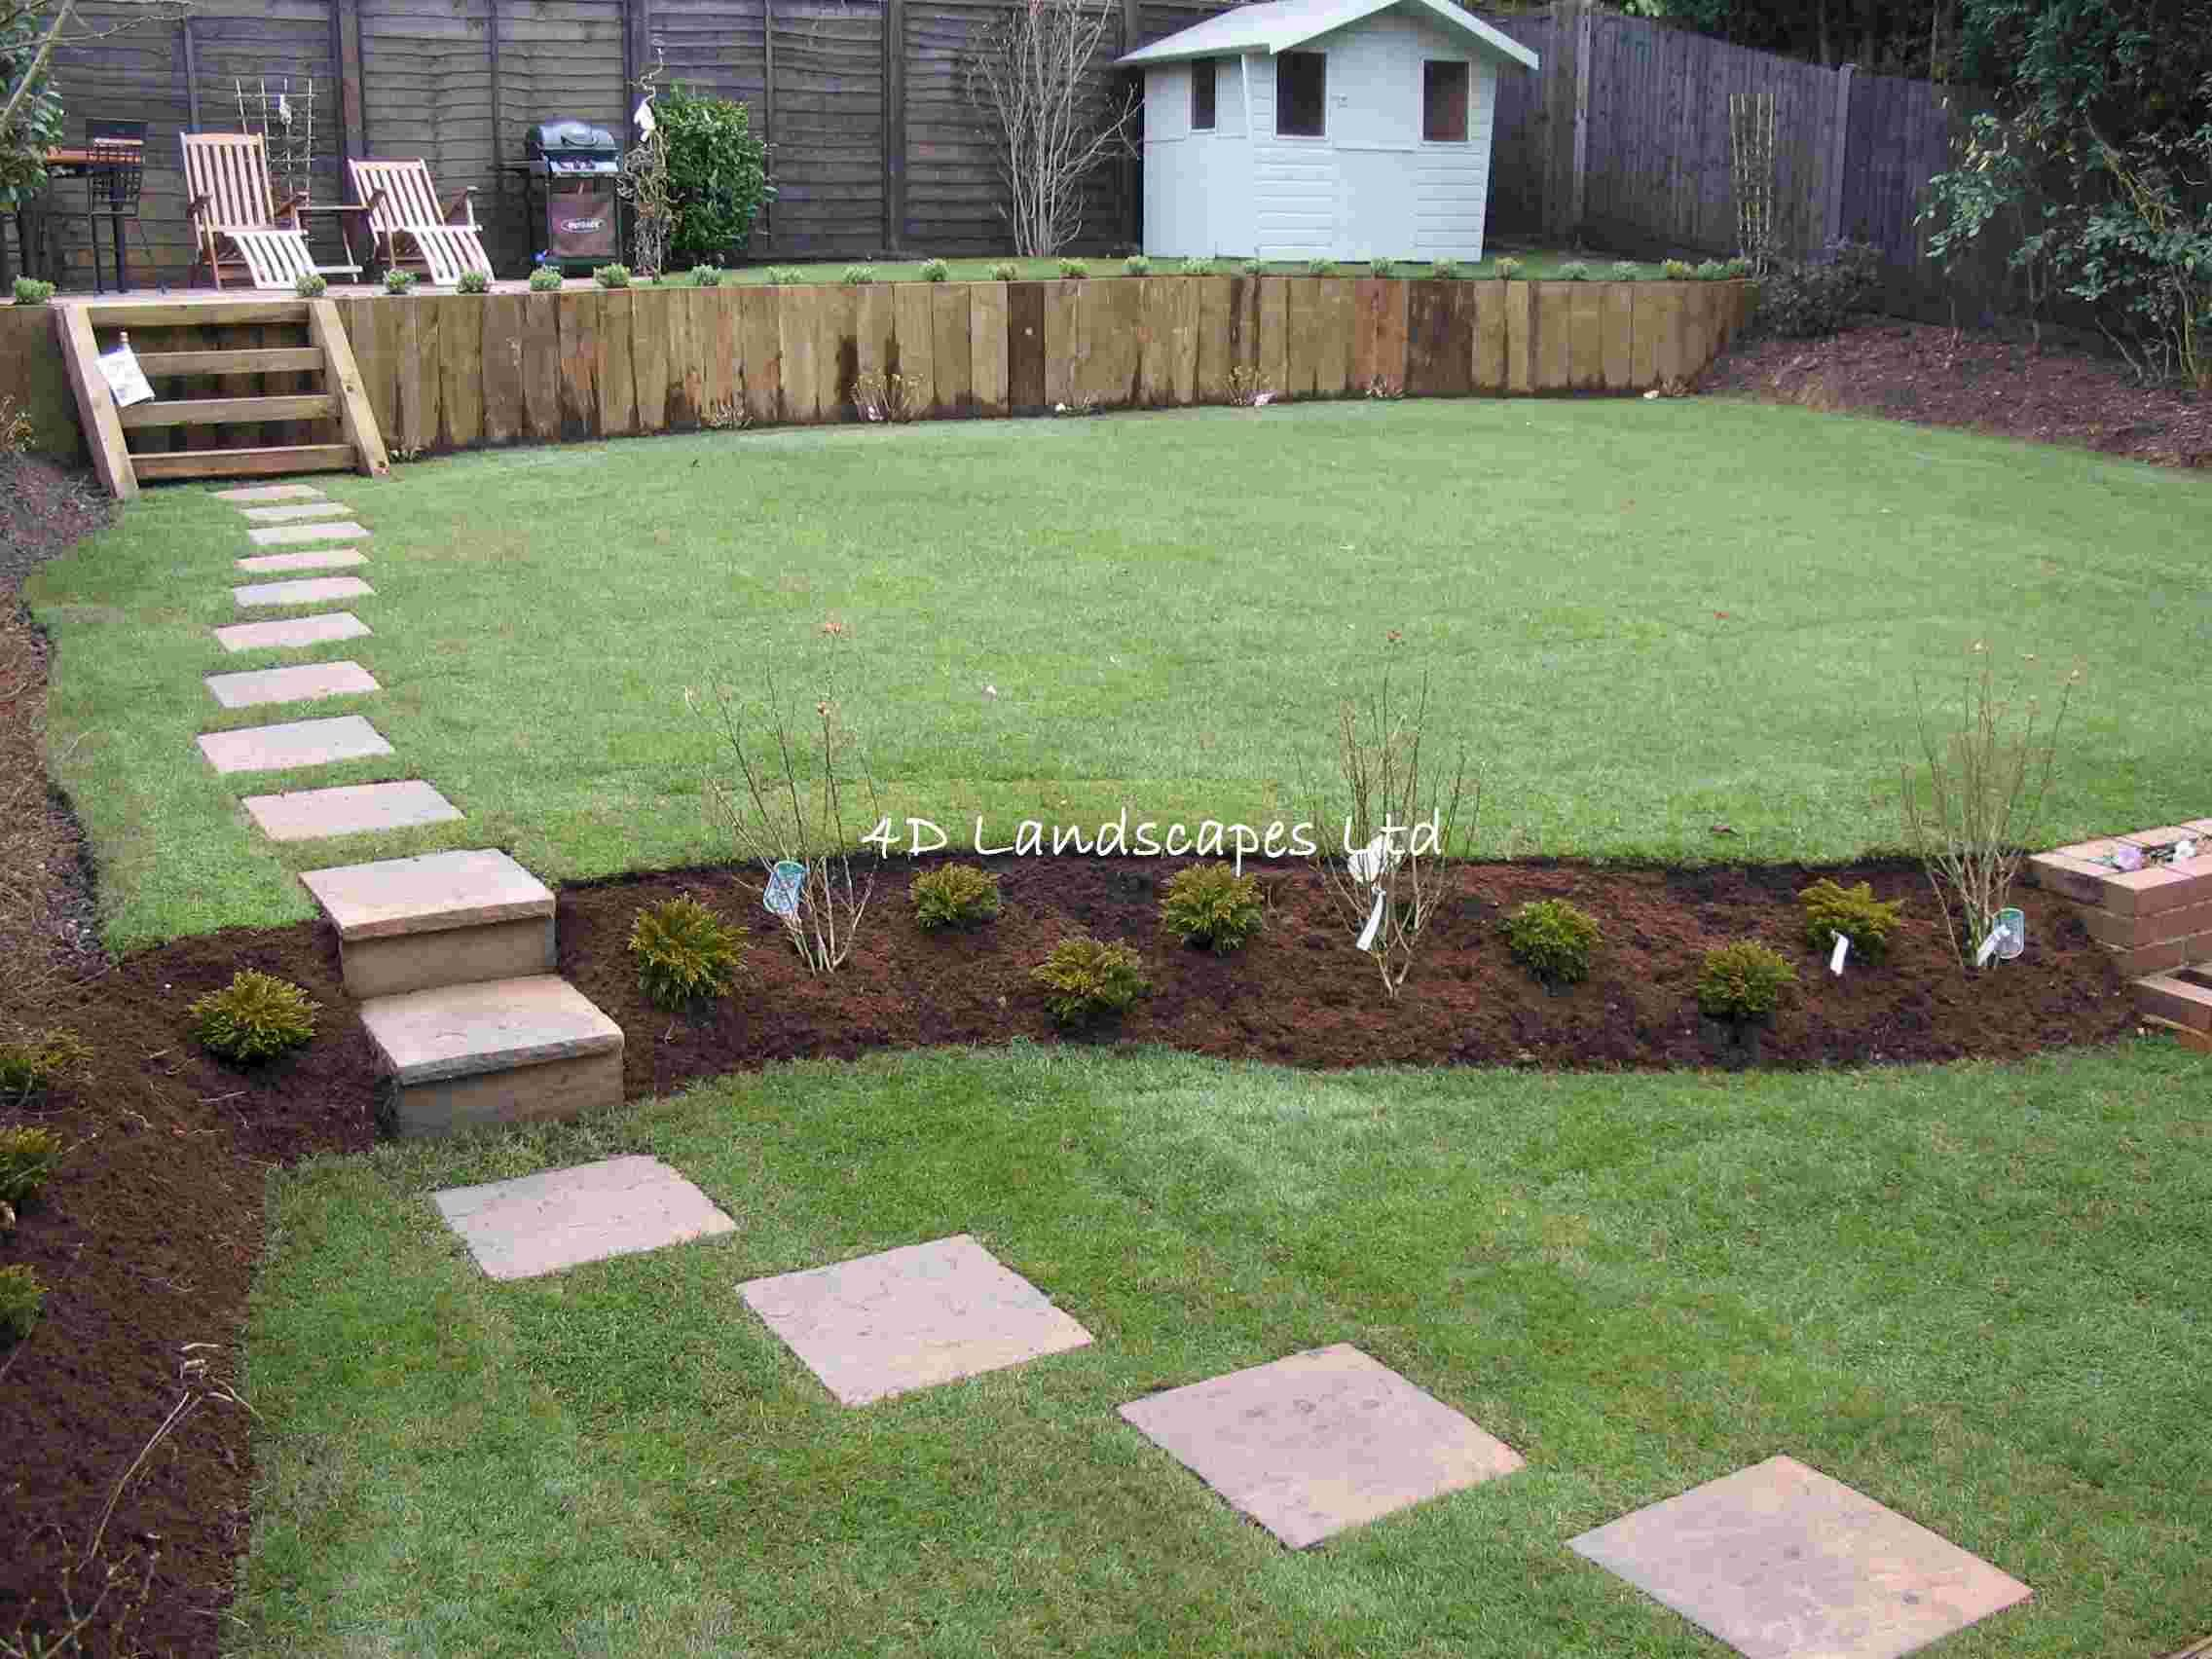 for Lawn and garden landscaping ideas